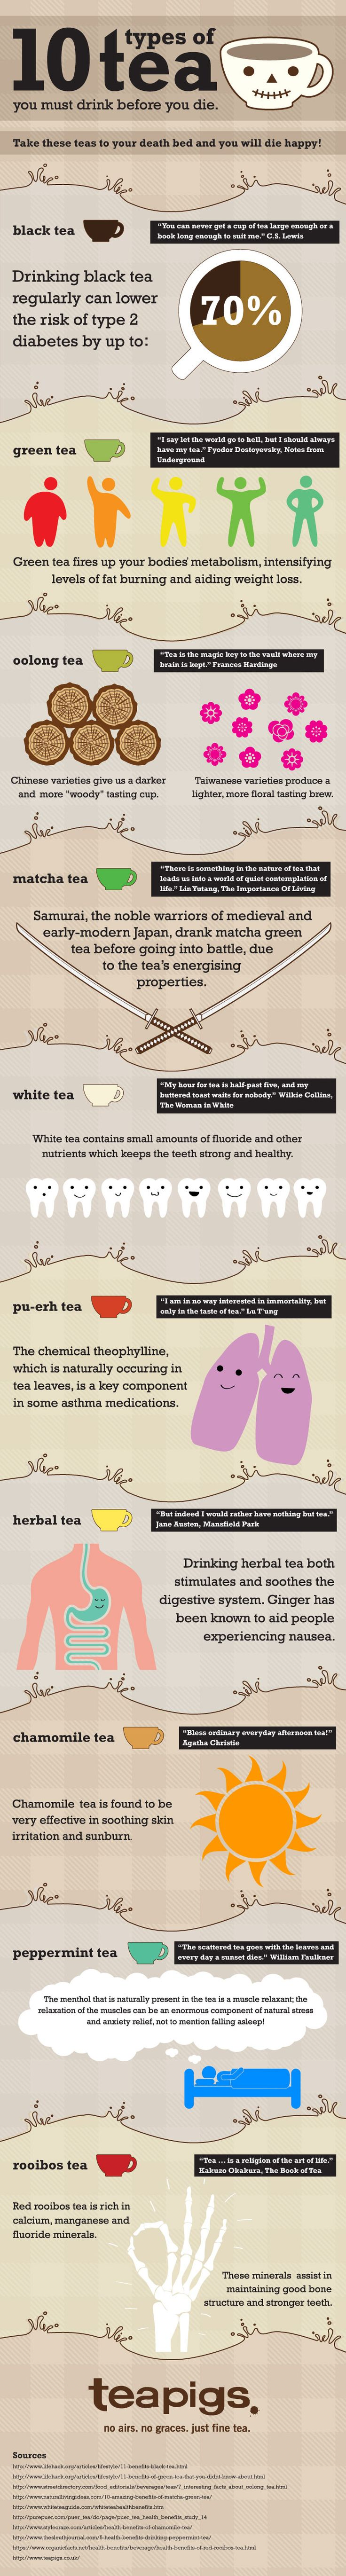 10 TEAS TO DRINK TO ENJOY YOUR LIFE